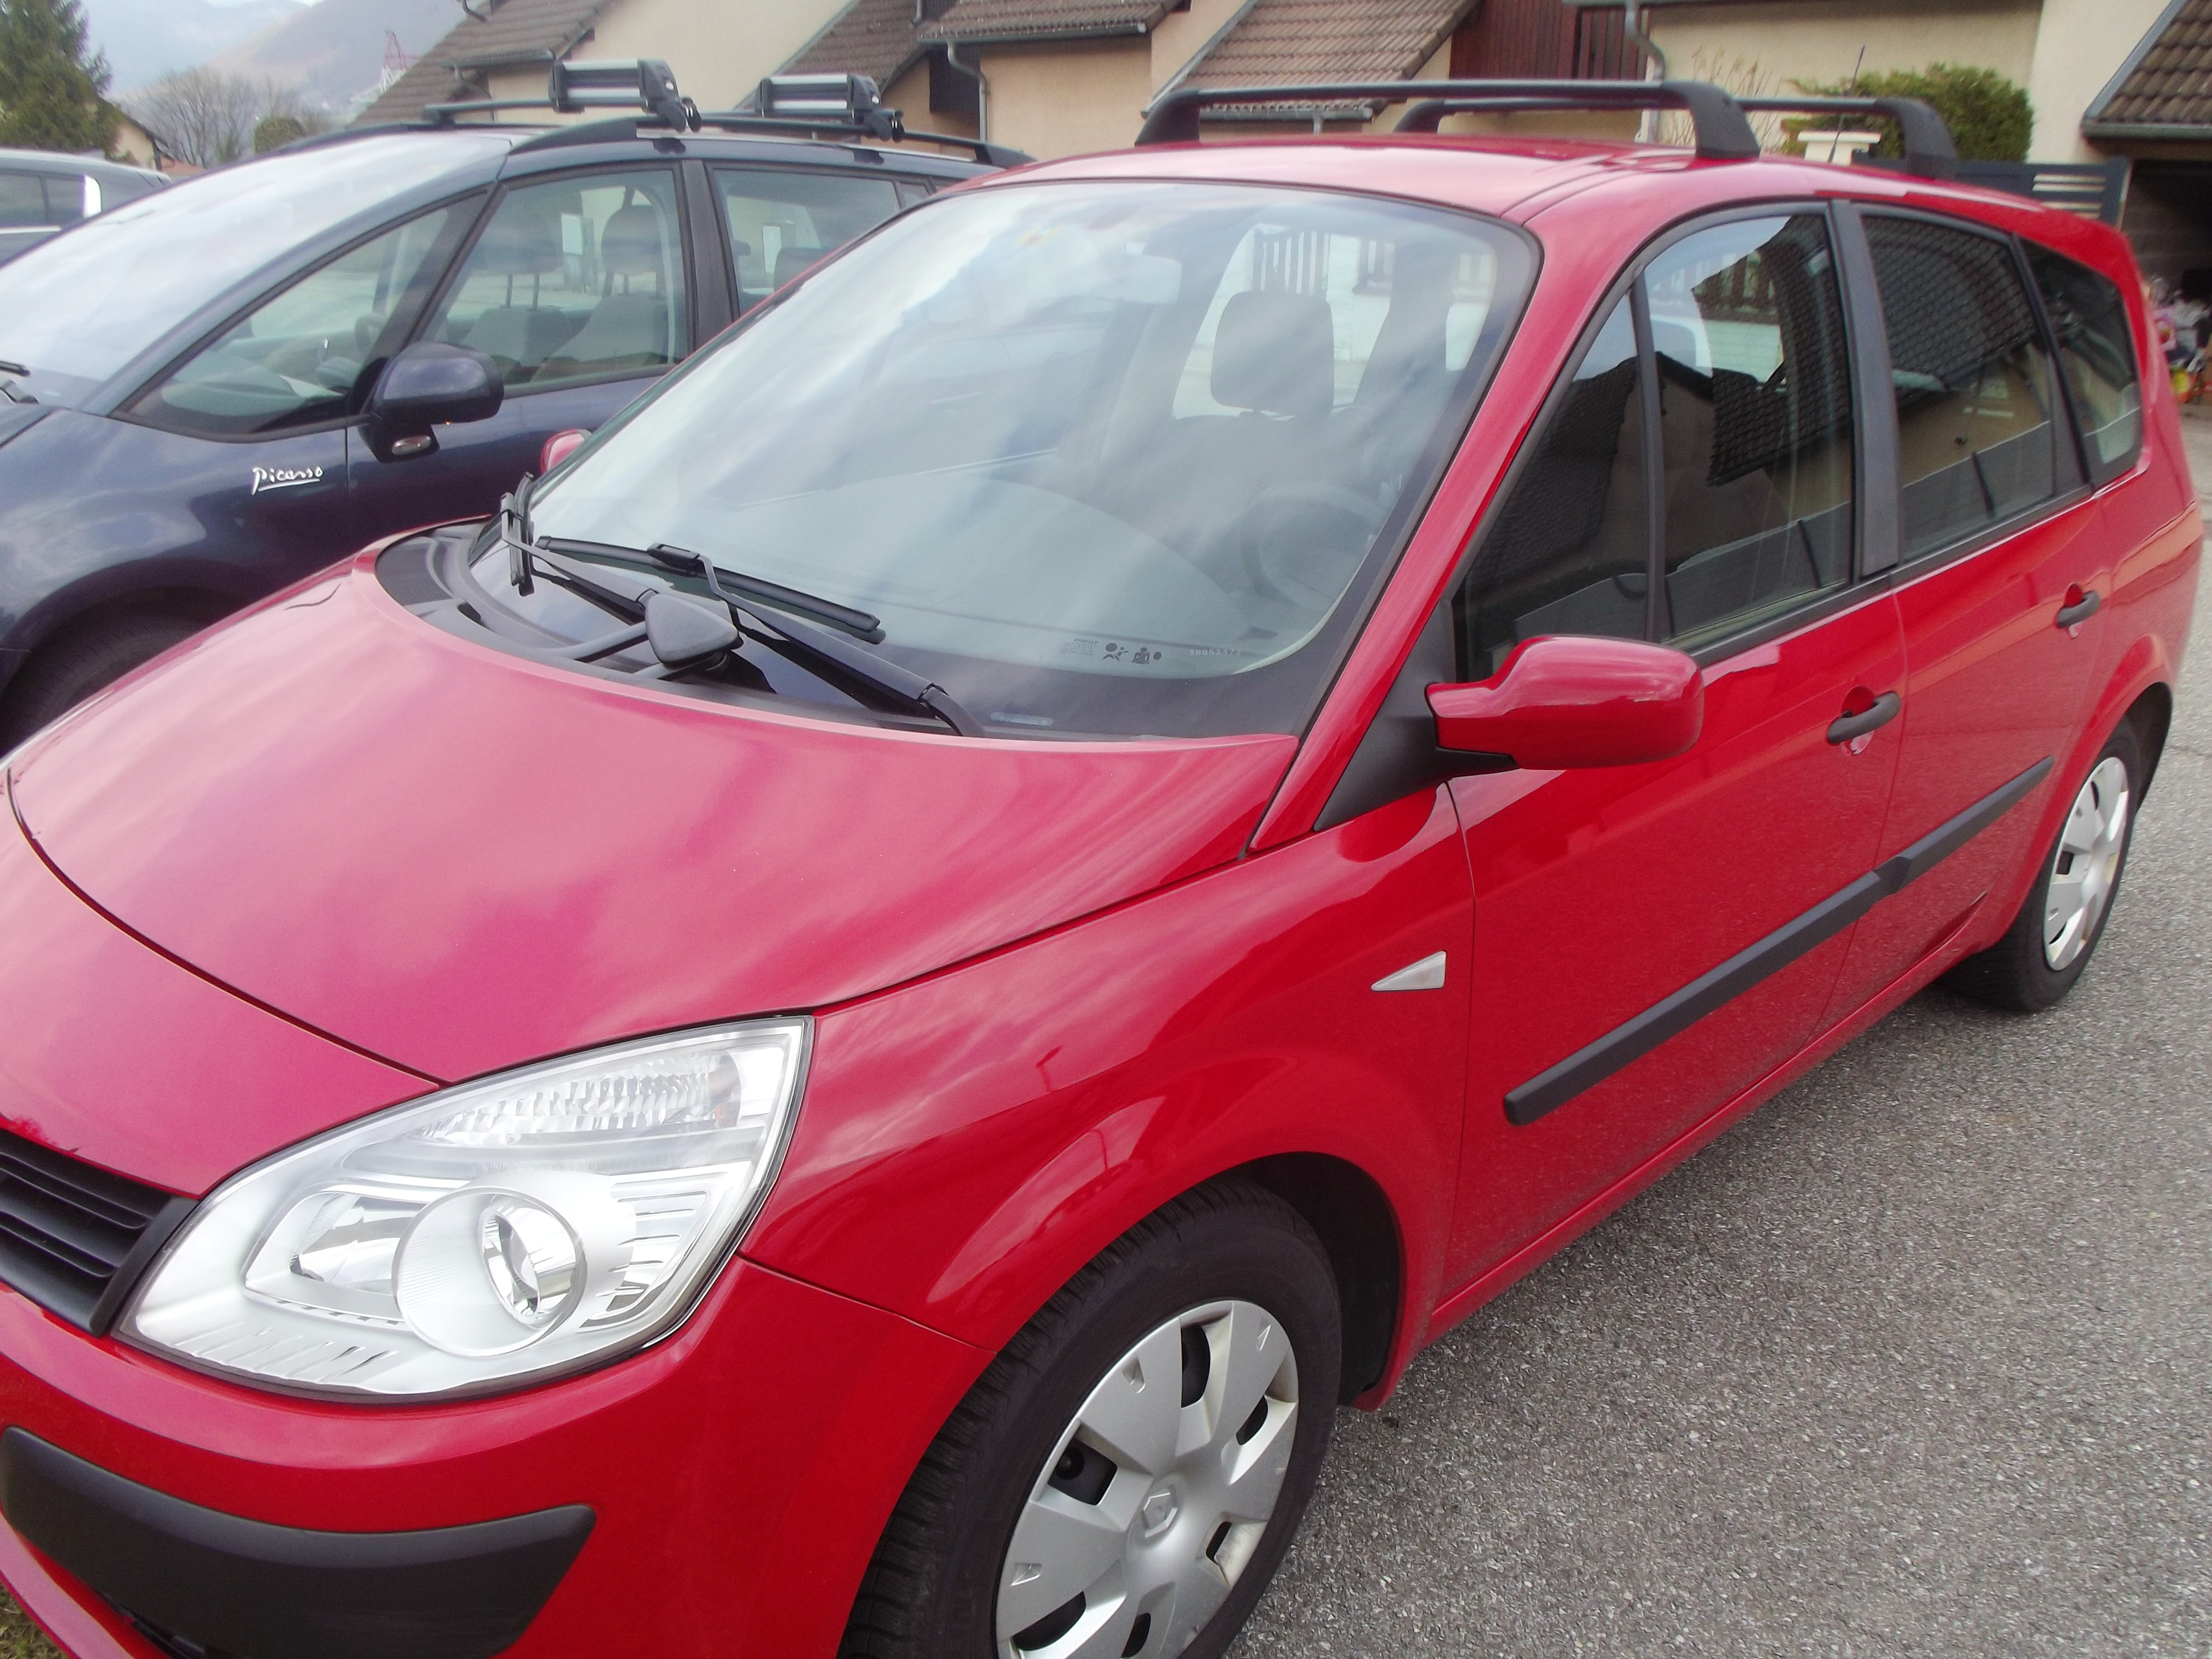 Renault Grand Scénic 7 PLACES 1.5 DCI 105CV AUTHENTIQUE, 2007, Diesel, 7 places